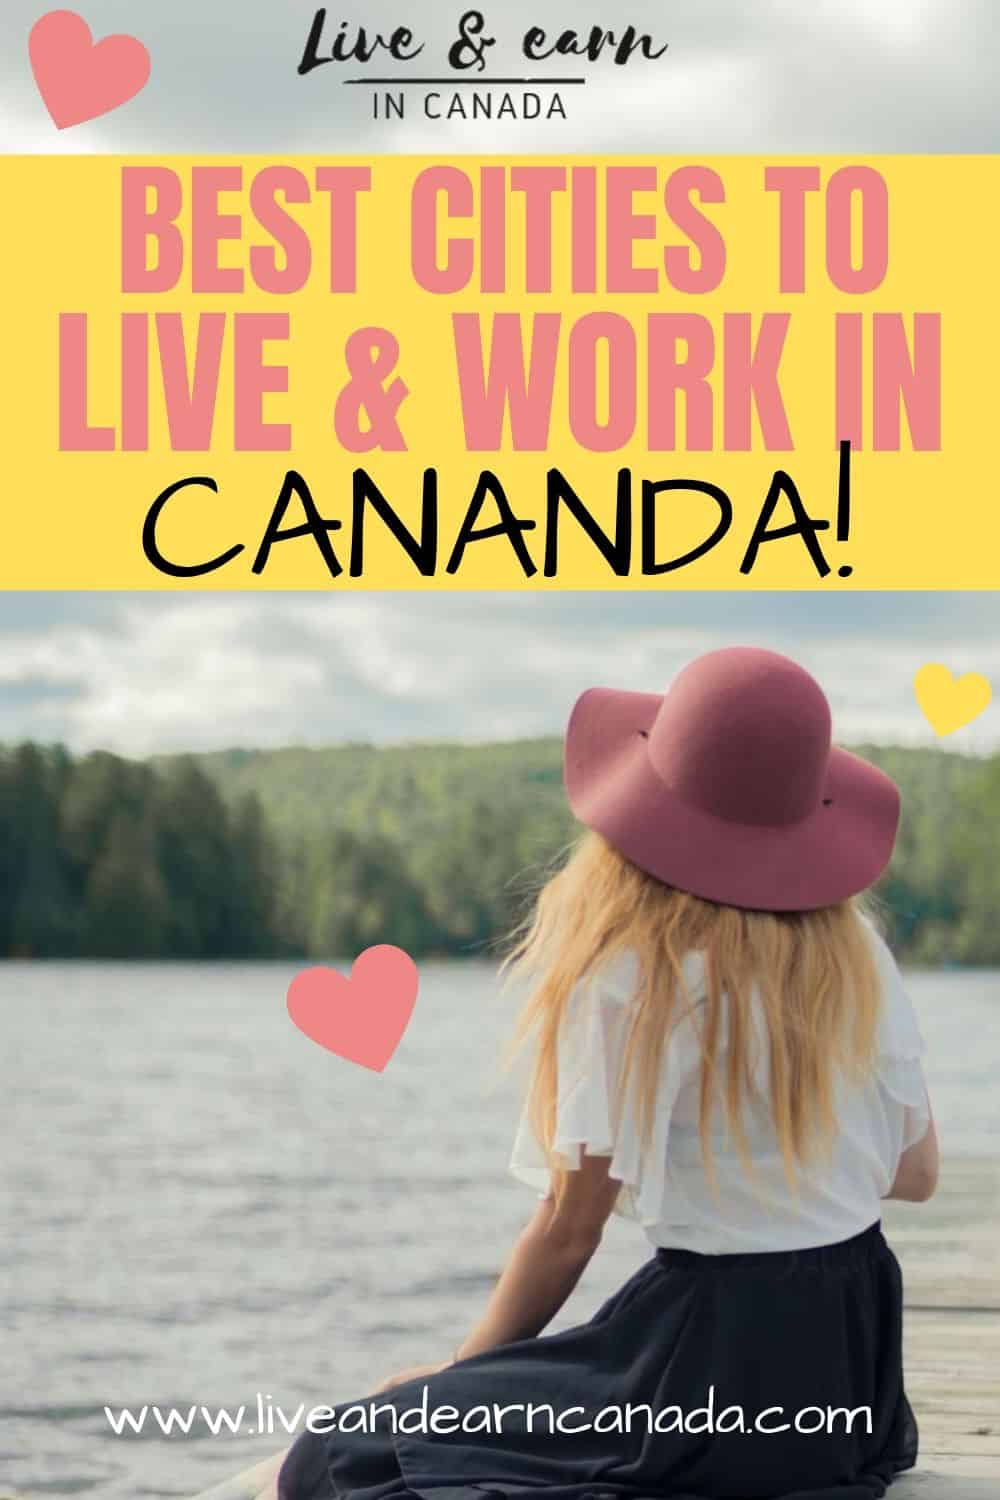 Best Cities To Live In Canada For Families and Work